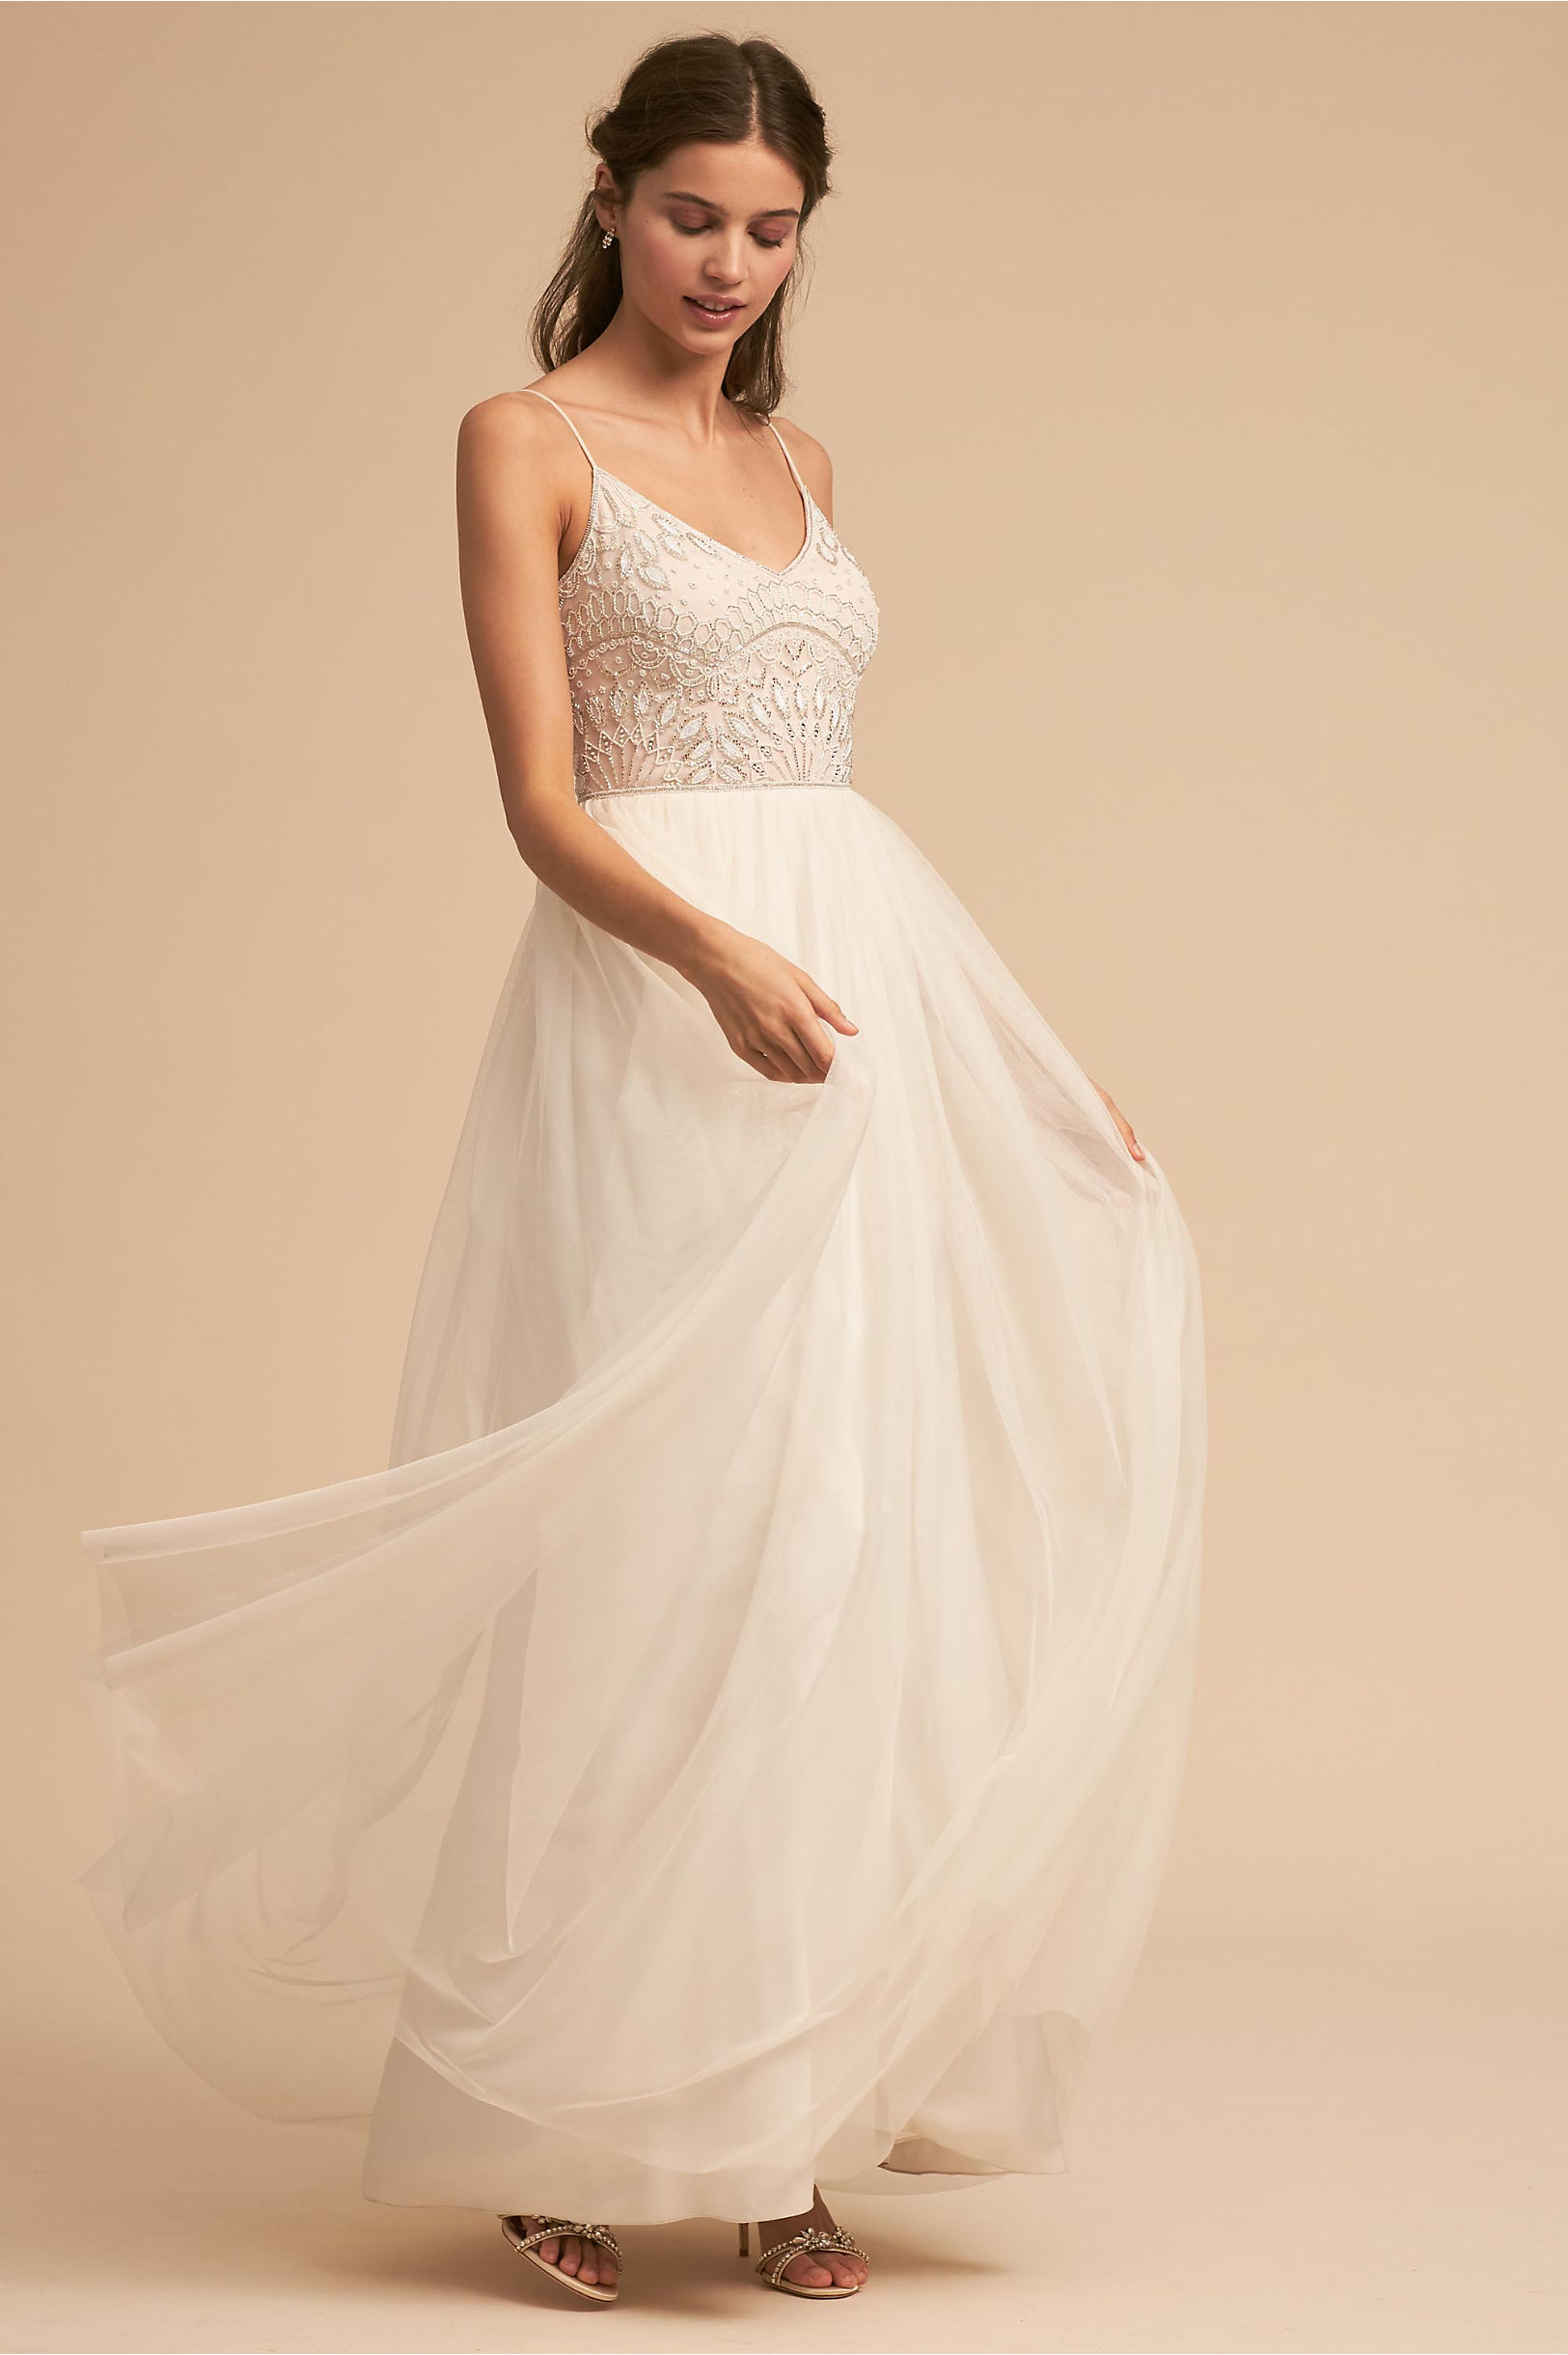 Violetta dress by BHLDN